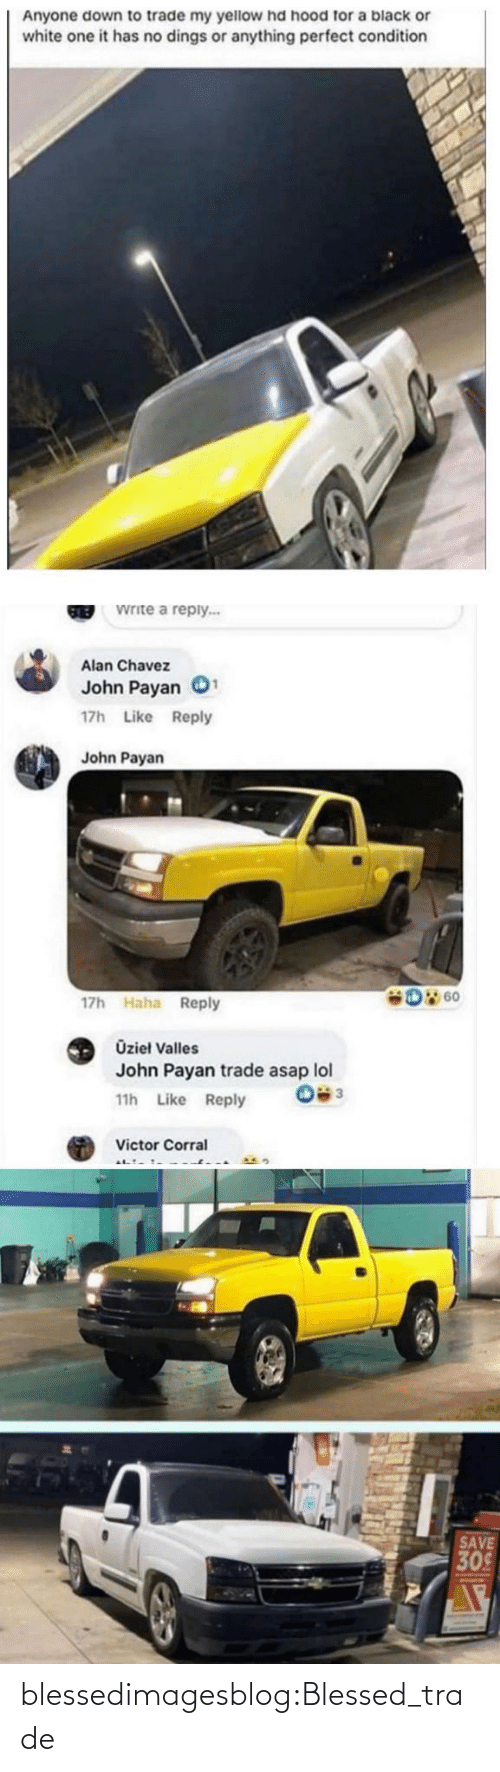 Condition: Anyone down to trade my yellow hd hood for a black or  white one it has no dings or anything perfect condition  Write a reply...  GREB  Alan Chavez  John Payan  17h Like Reply  John Payan  D 60  17h Haha Reply  Üzieł Valles  John Payan trade asap lol  11h Like Reply  Victor Corral  SAVE  309 blessedimagesblog:Blessed_trade